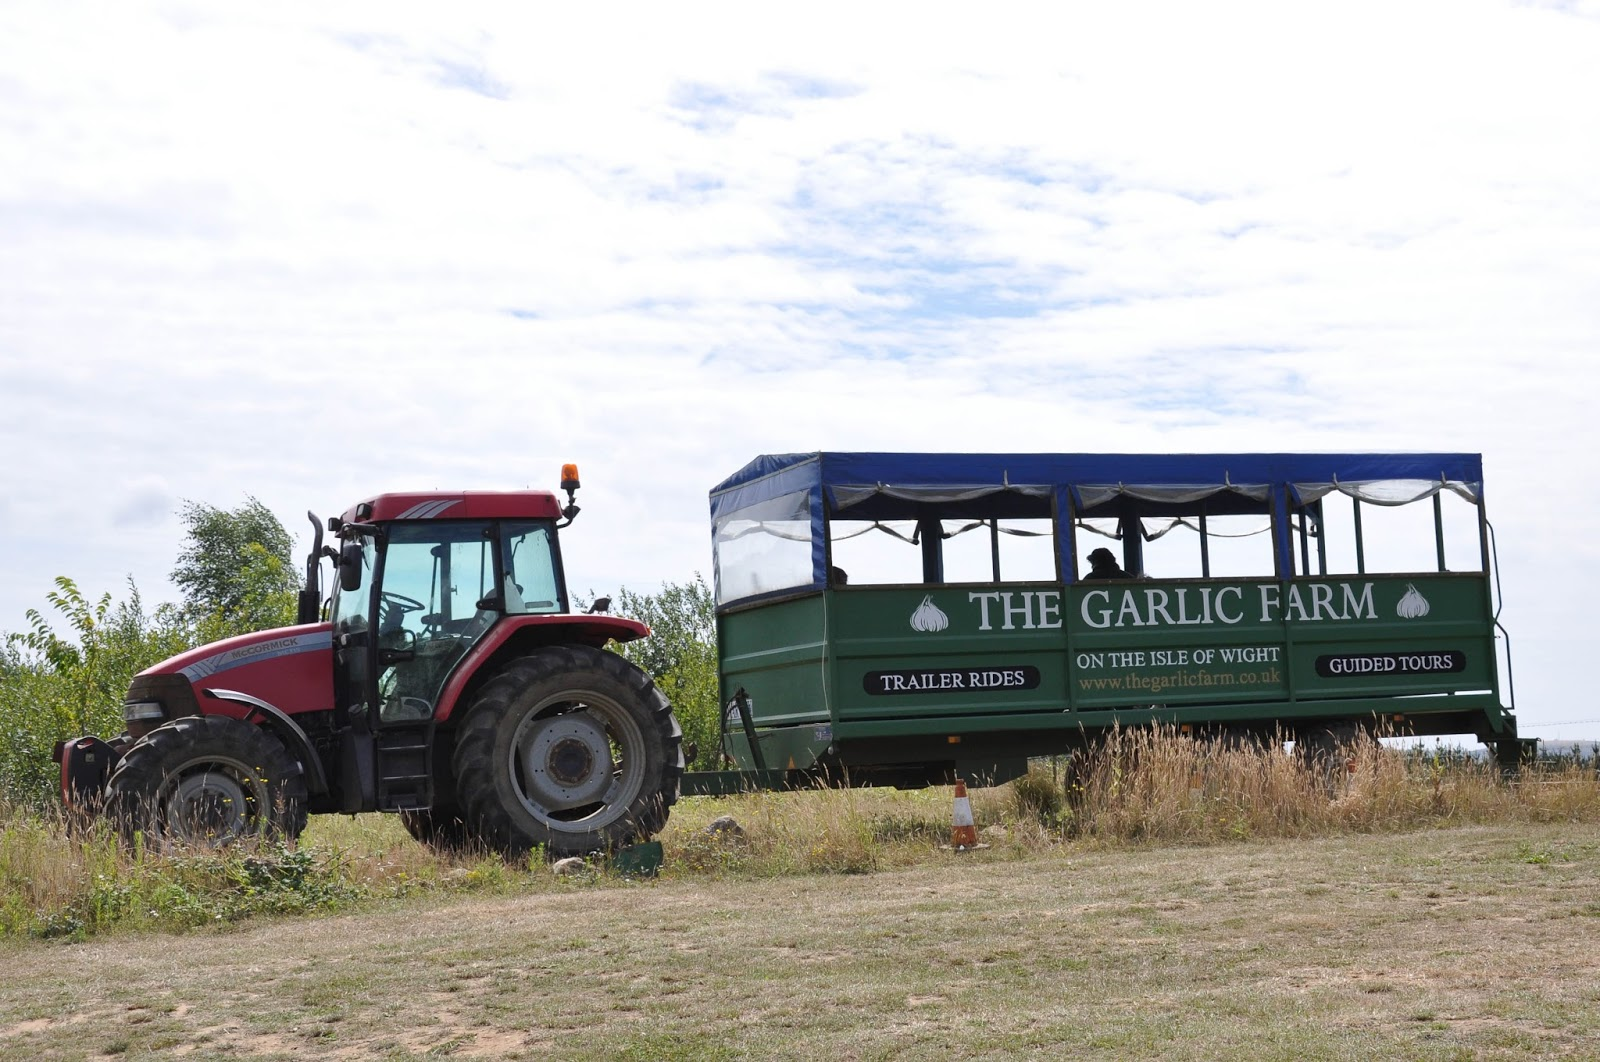 Tractor rides, The Garlic Farm, Isle of Wight, UK